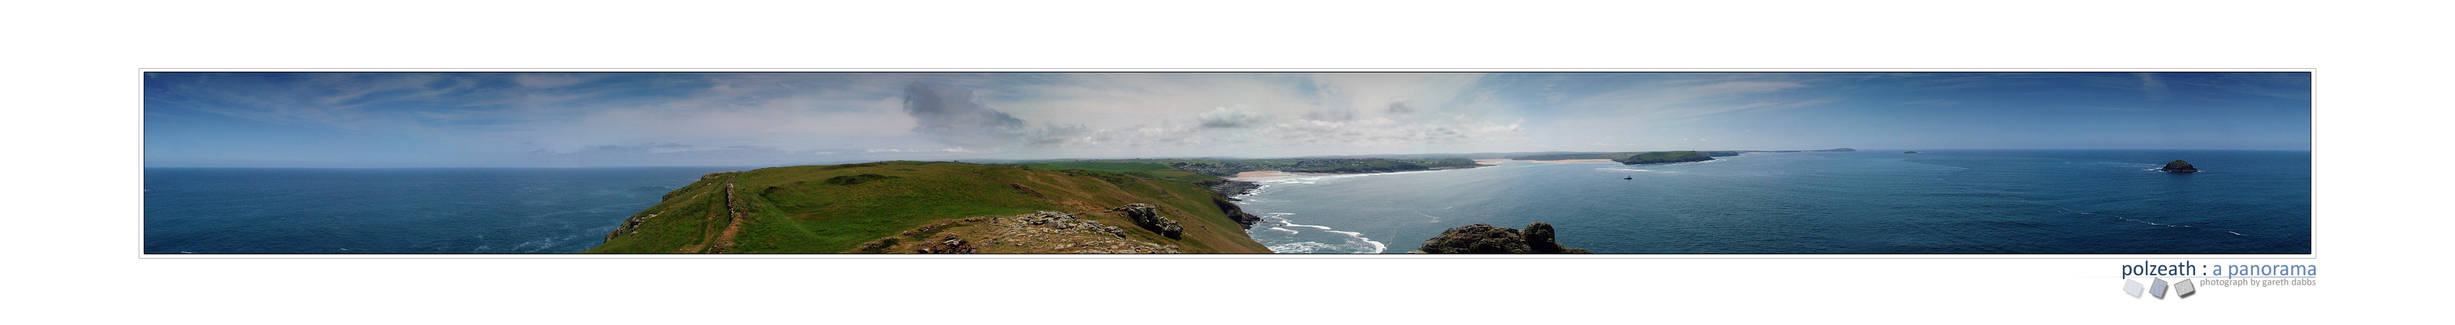 Polzeath : a panorama